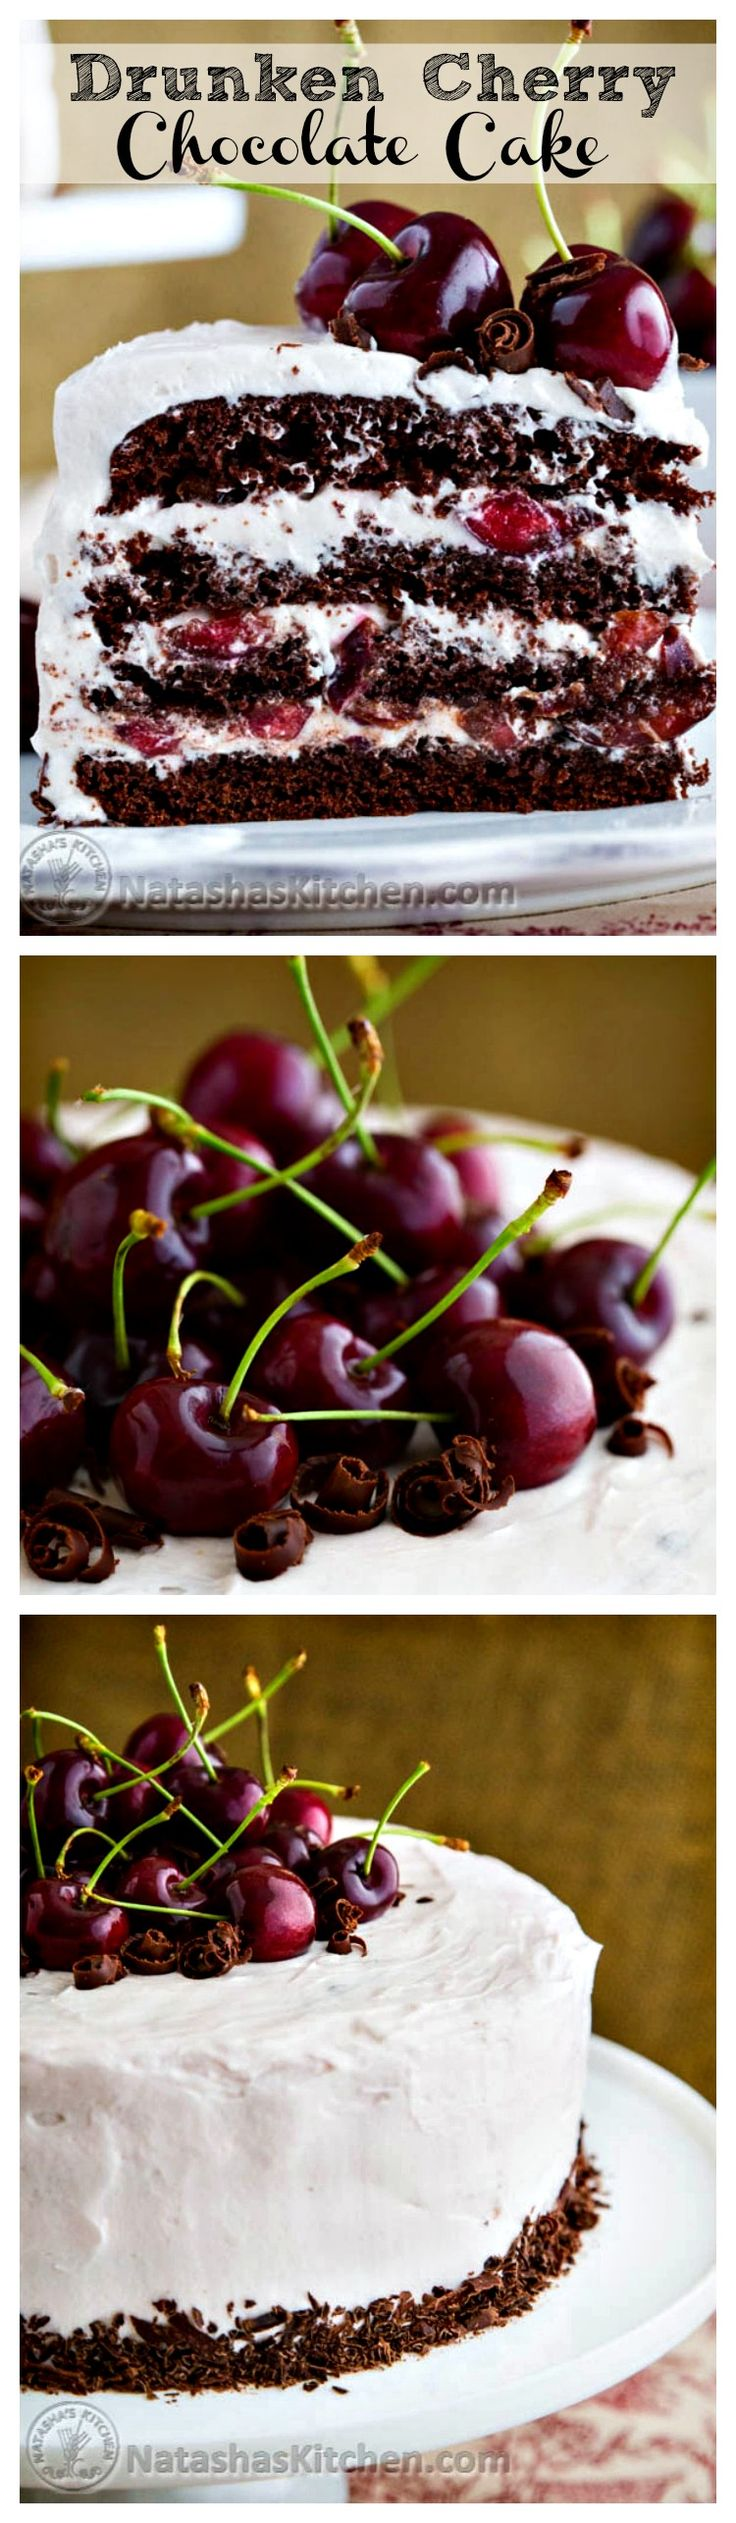 Drunken Cherry Cake by nastashaskitchen: Moist, chocolatey, boozy, and…